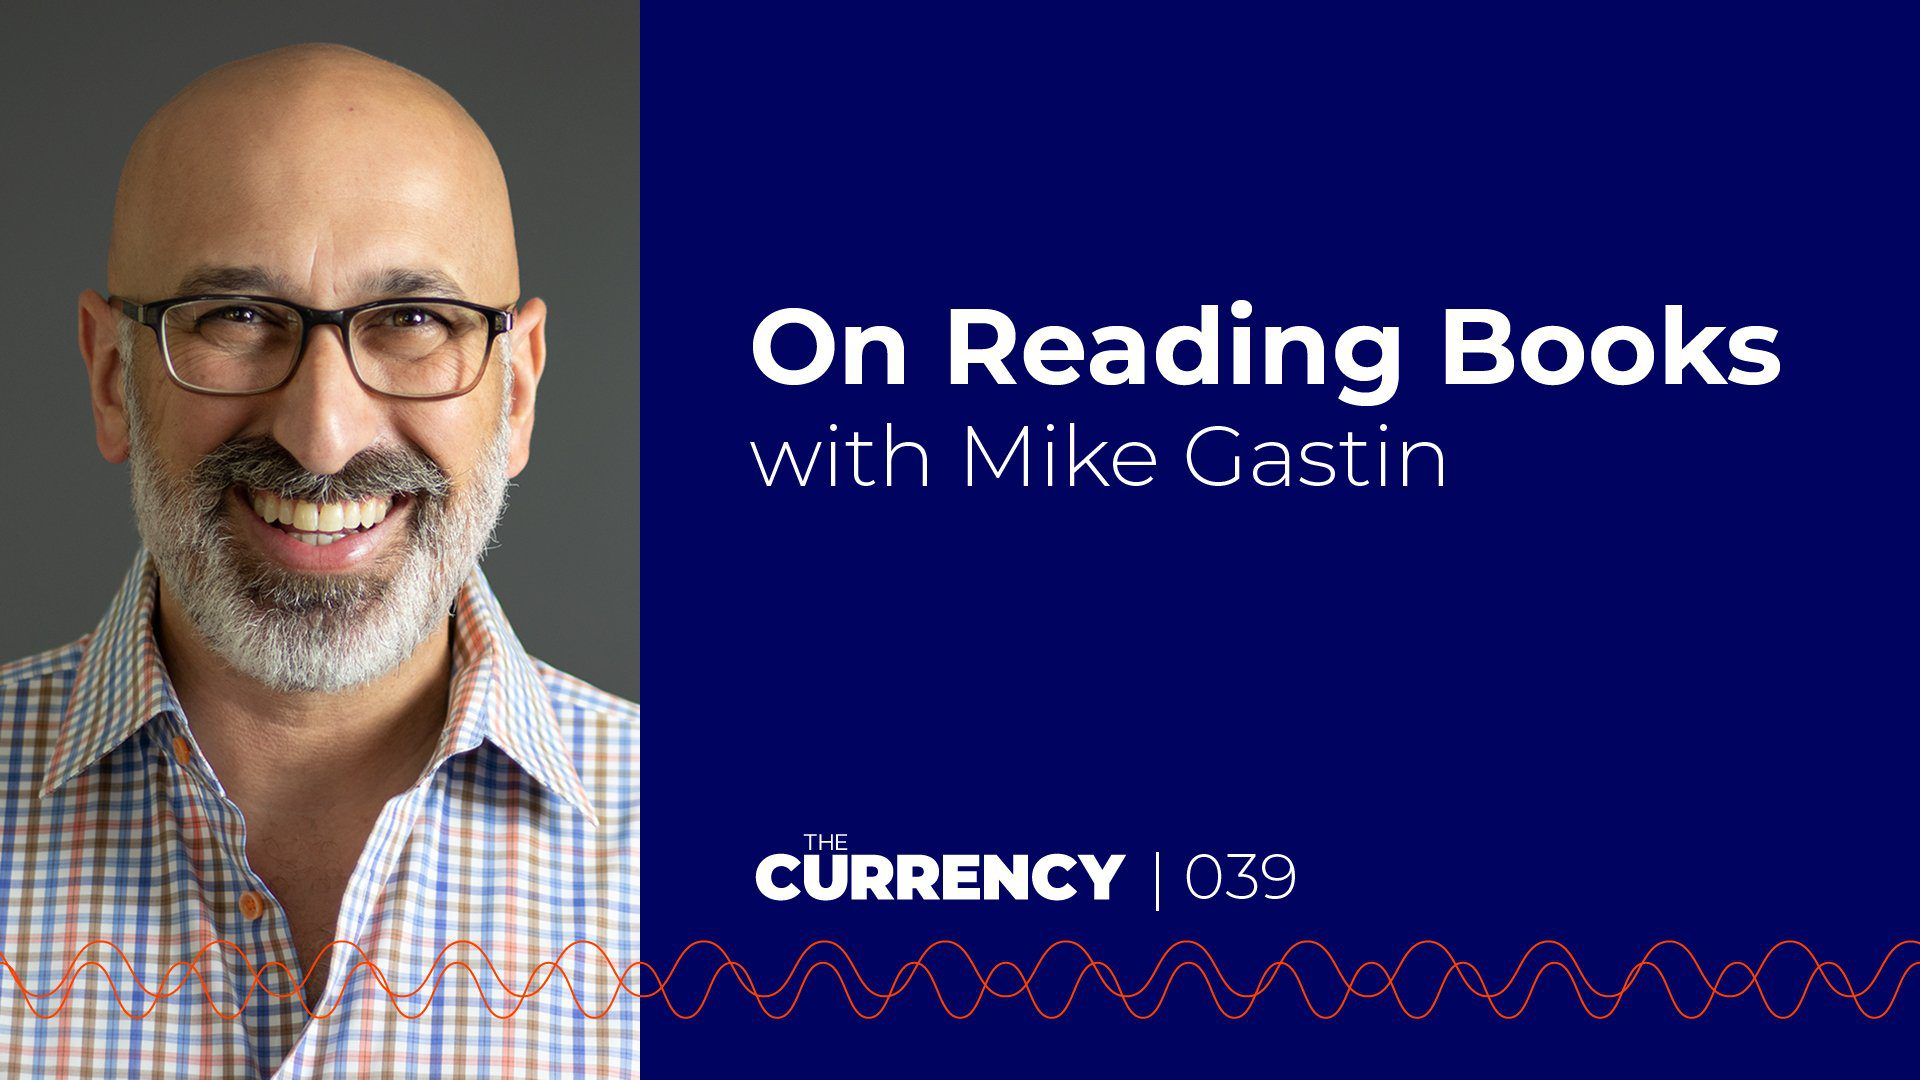 The Currency: [039] On Reading Books